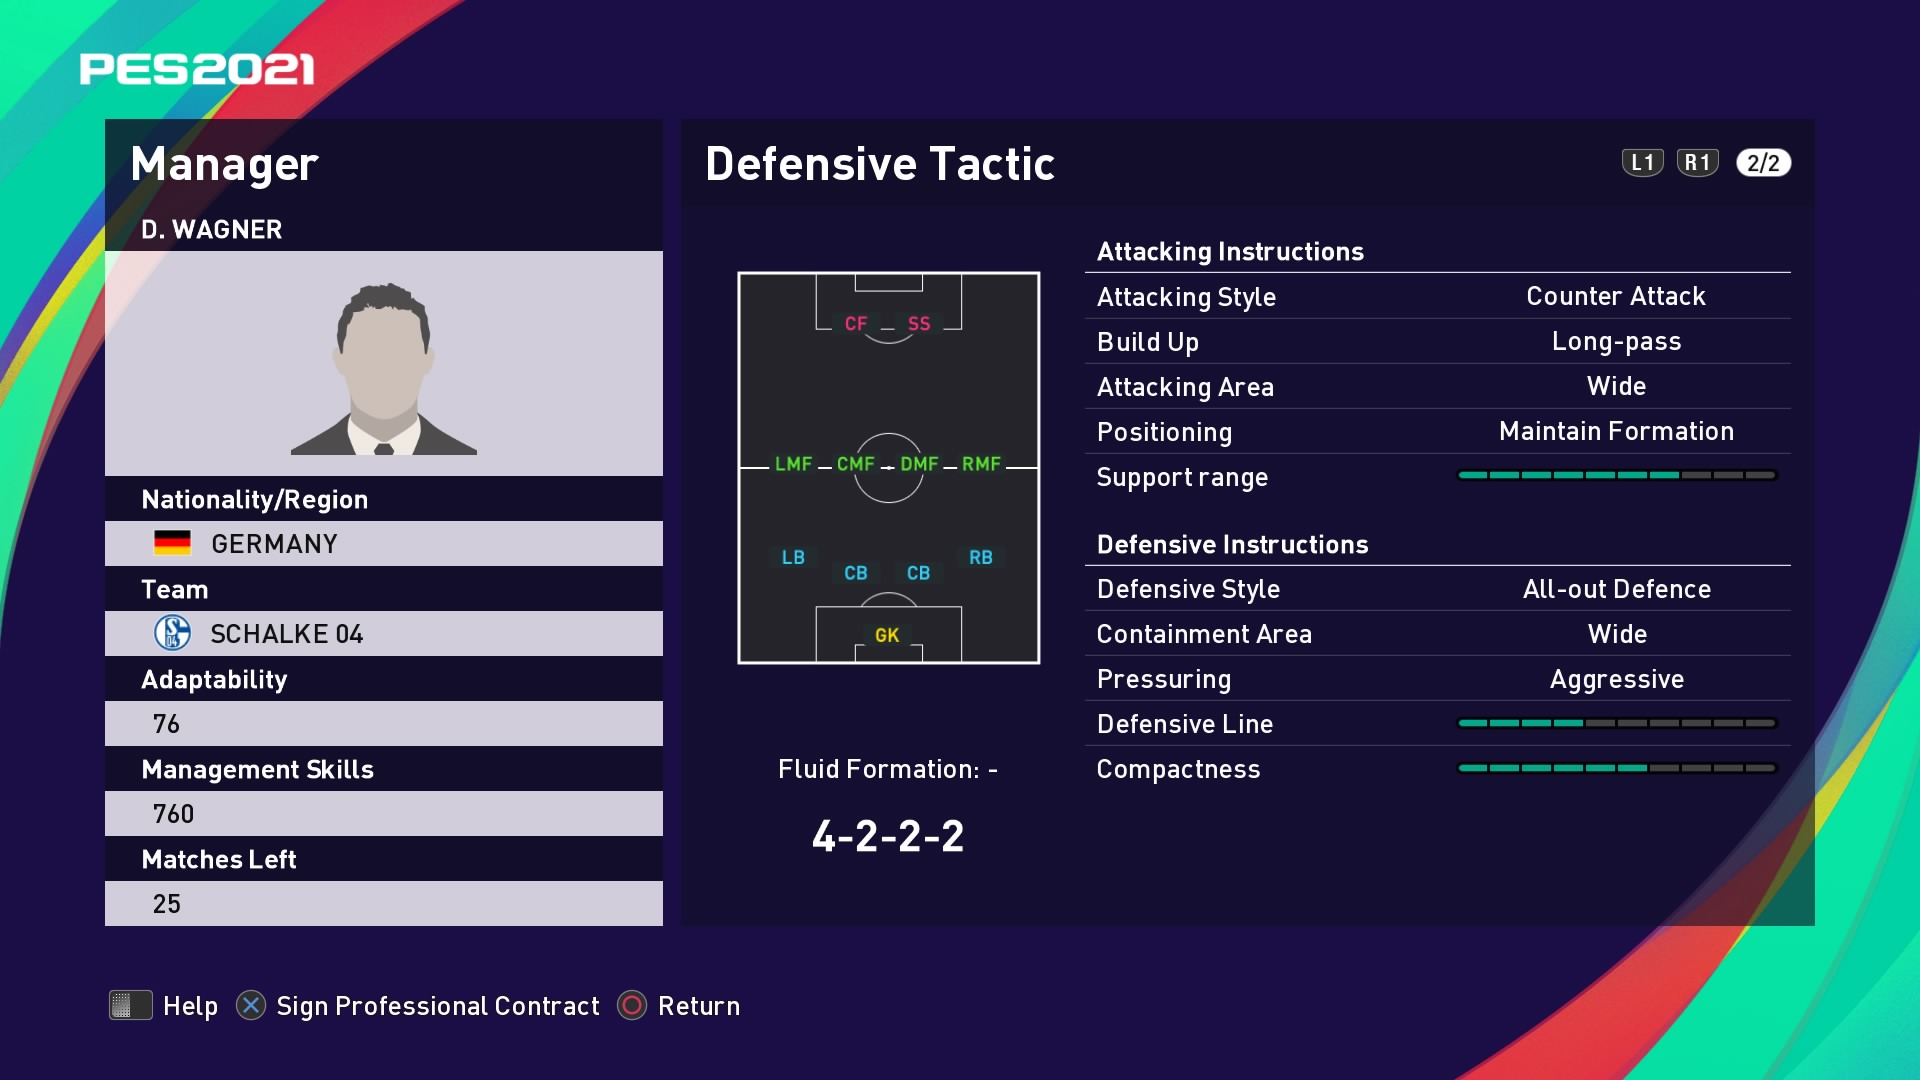 D. Wagner (David Wagner) Defensive Tactic in PES 2021 myClub